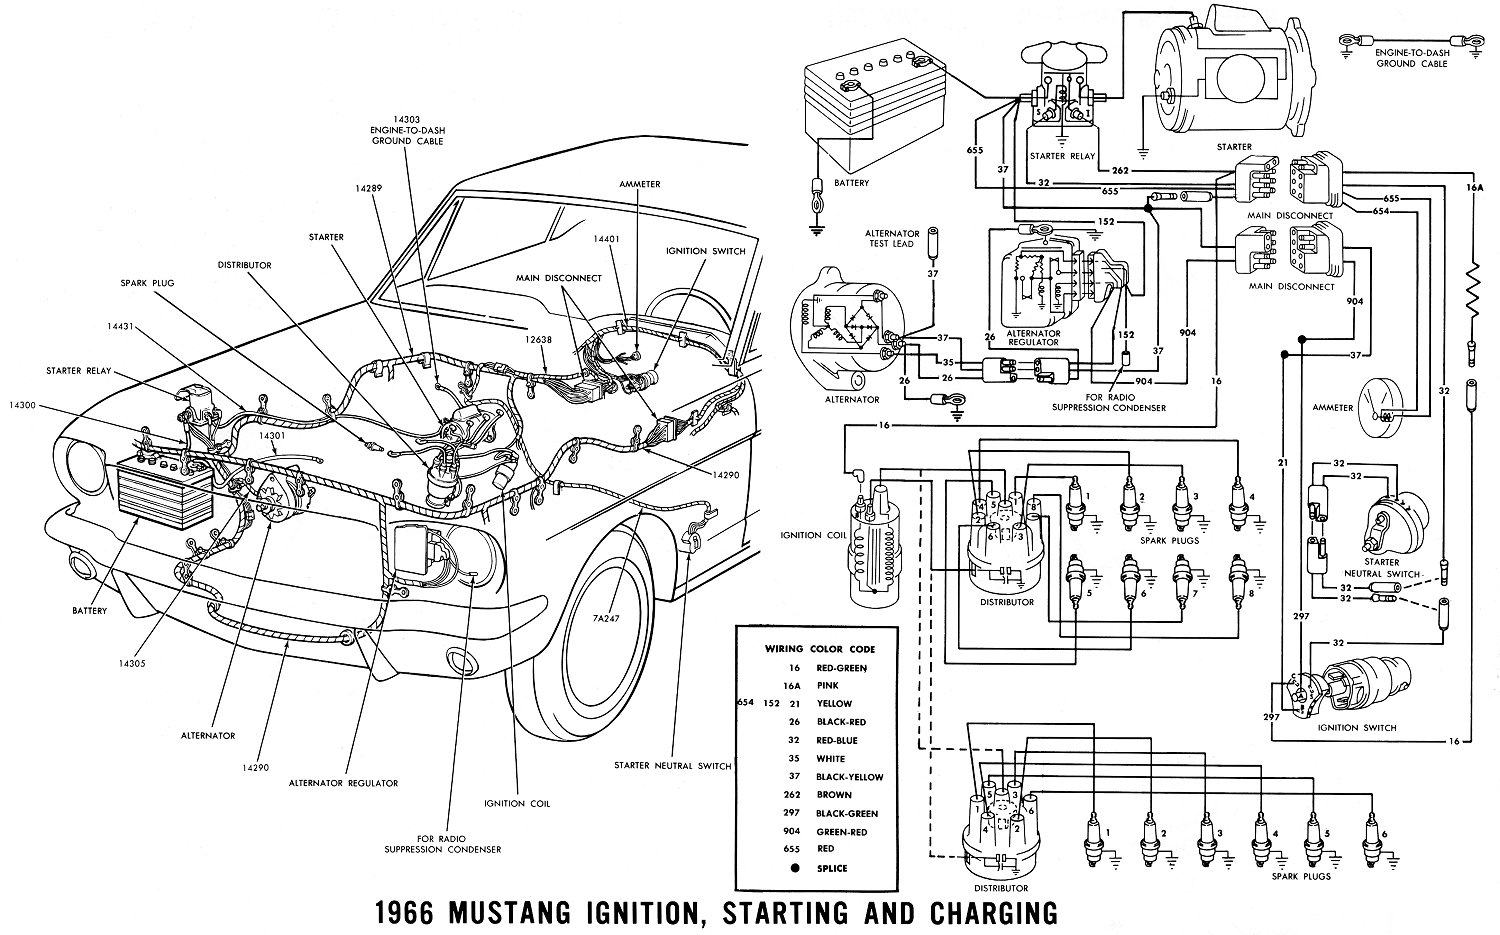 1965 wiring that goes to starter solenoid with Another Led Taillight Question on 1969 Cadillac Deville Vacuum Diagram besides Suggested Wiring Diagram Alternator further 1971 Ford Mustang Wiring Harness in addition Ford 5 4 Liter Engine Diagrams And Schematics furthermore 686489 Gas Gauge Wiring 3.